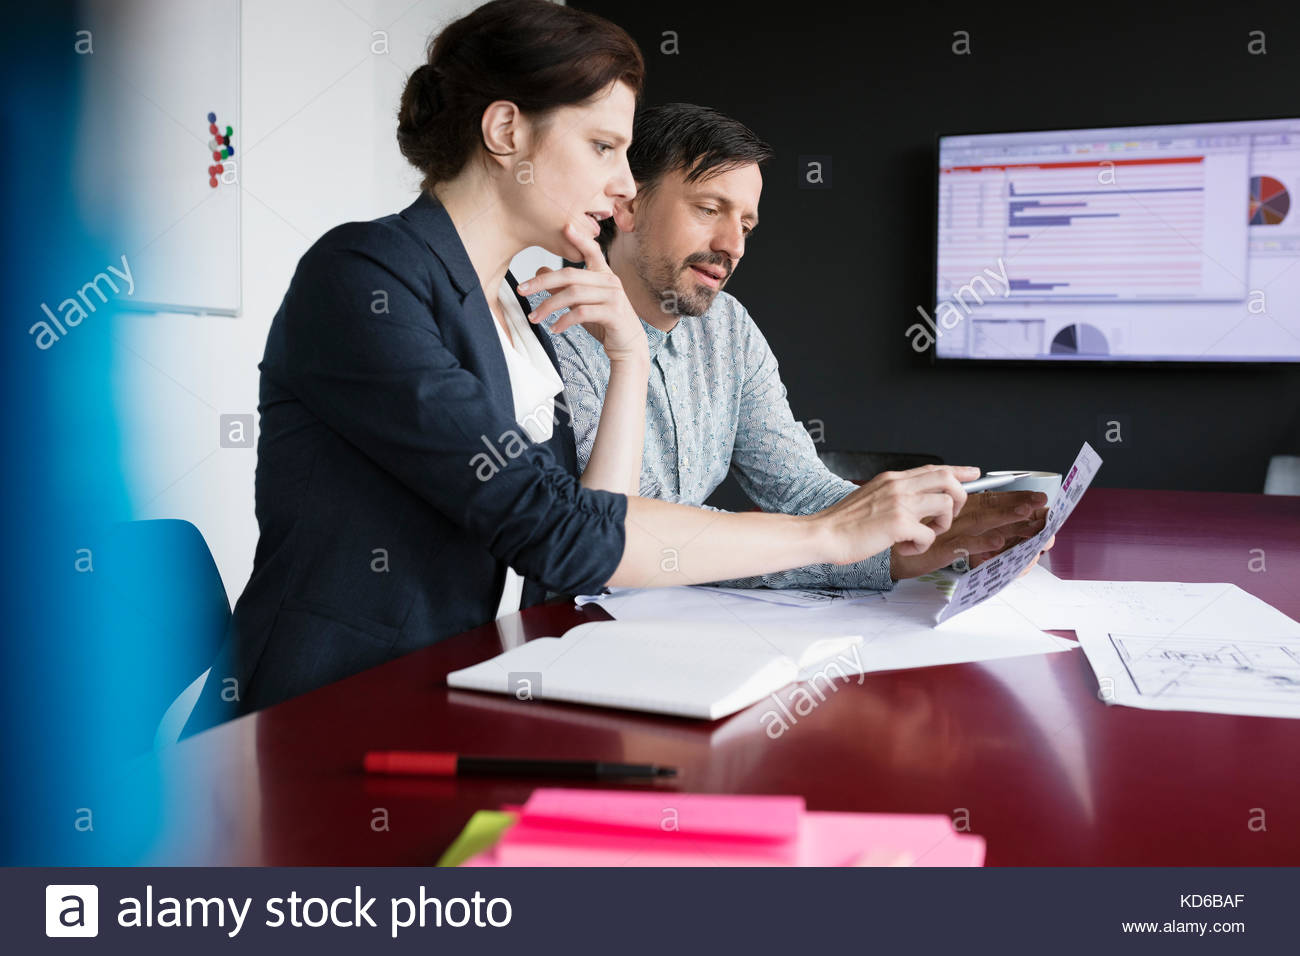 Business people reviewing paperwork in conference room meeting - Stock Image